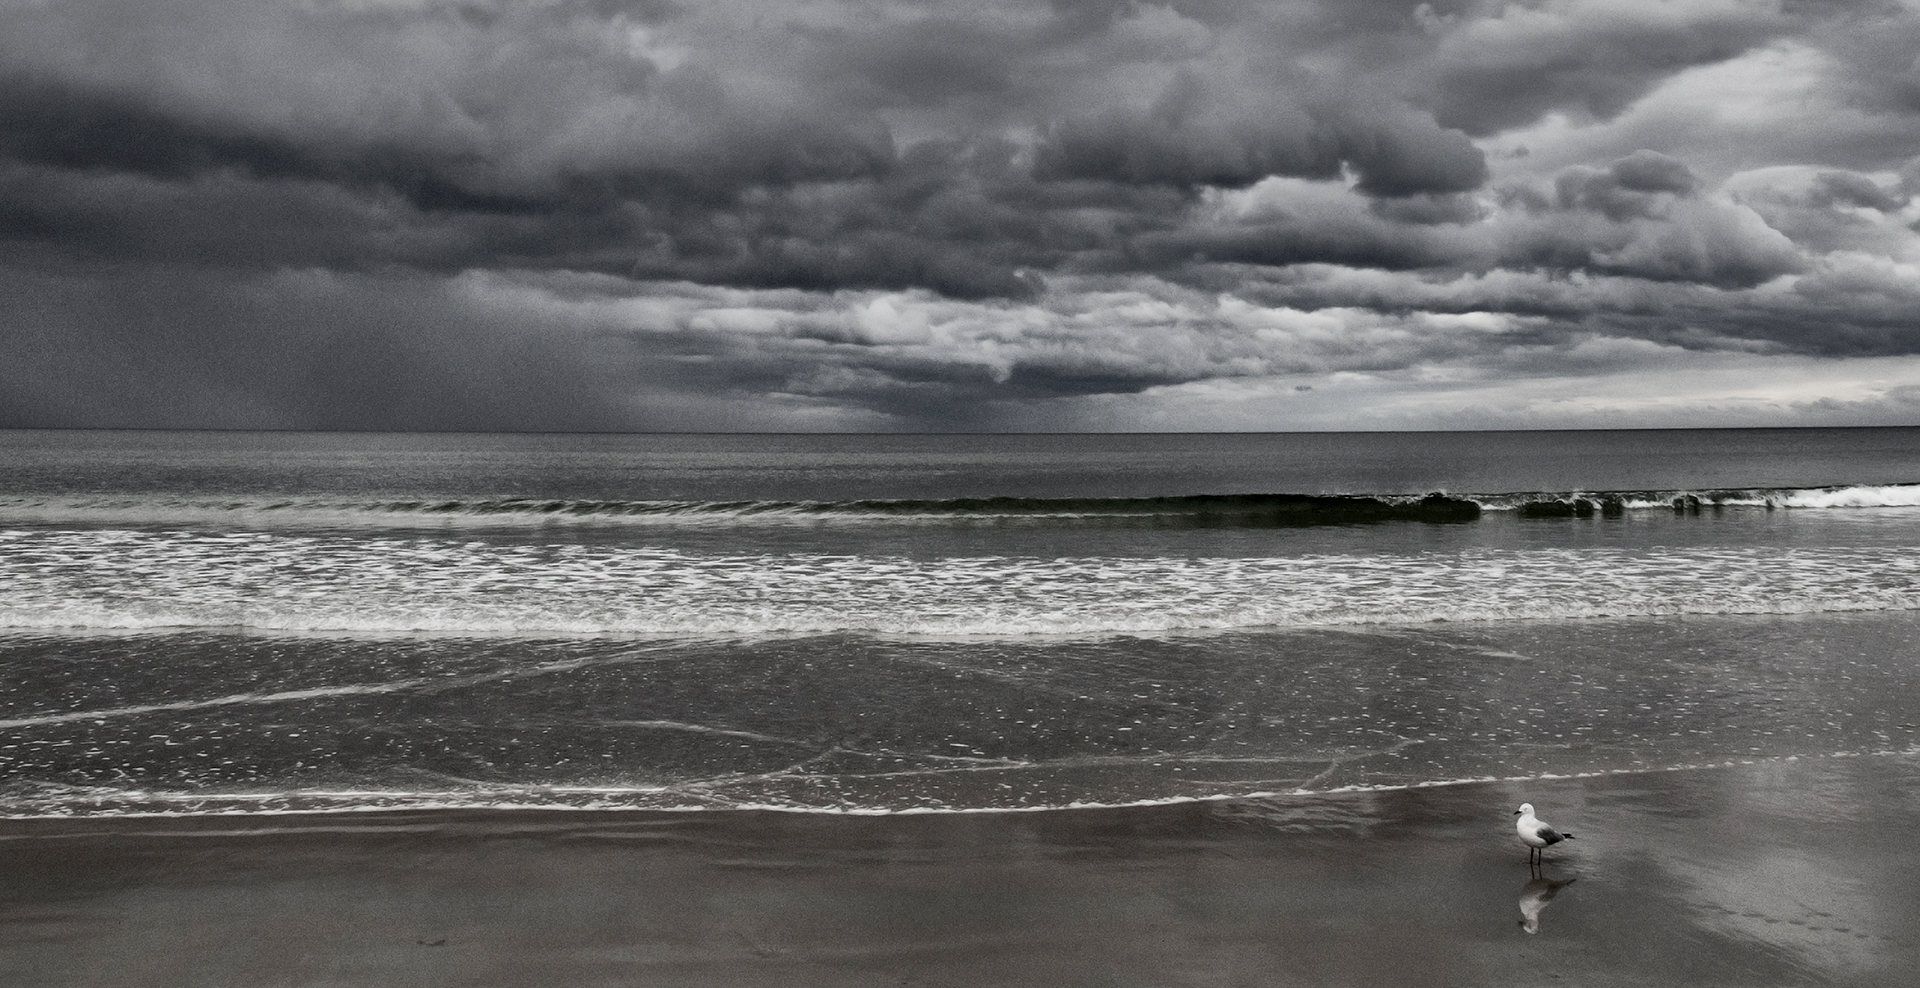 Pambula Beach - Brian Gunter